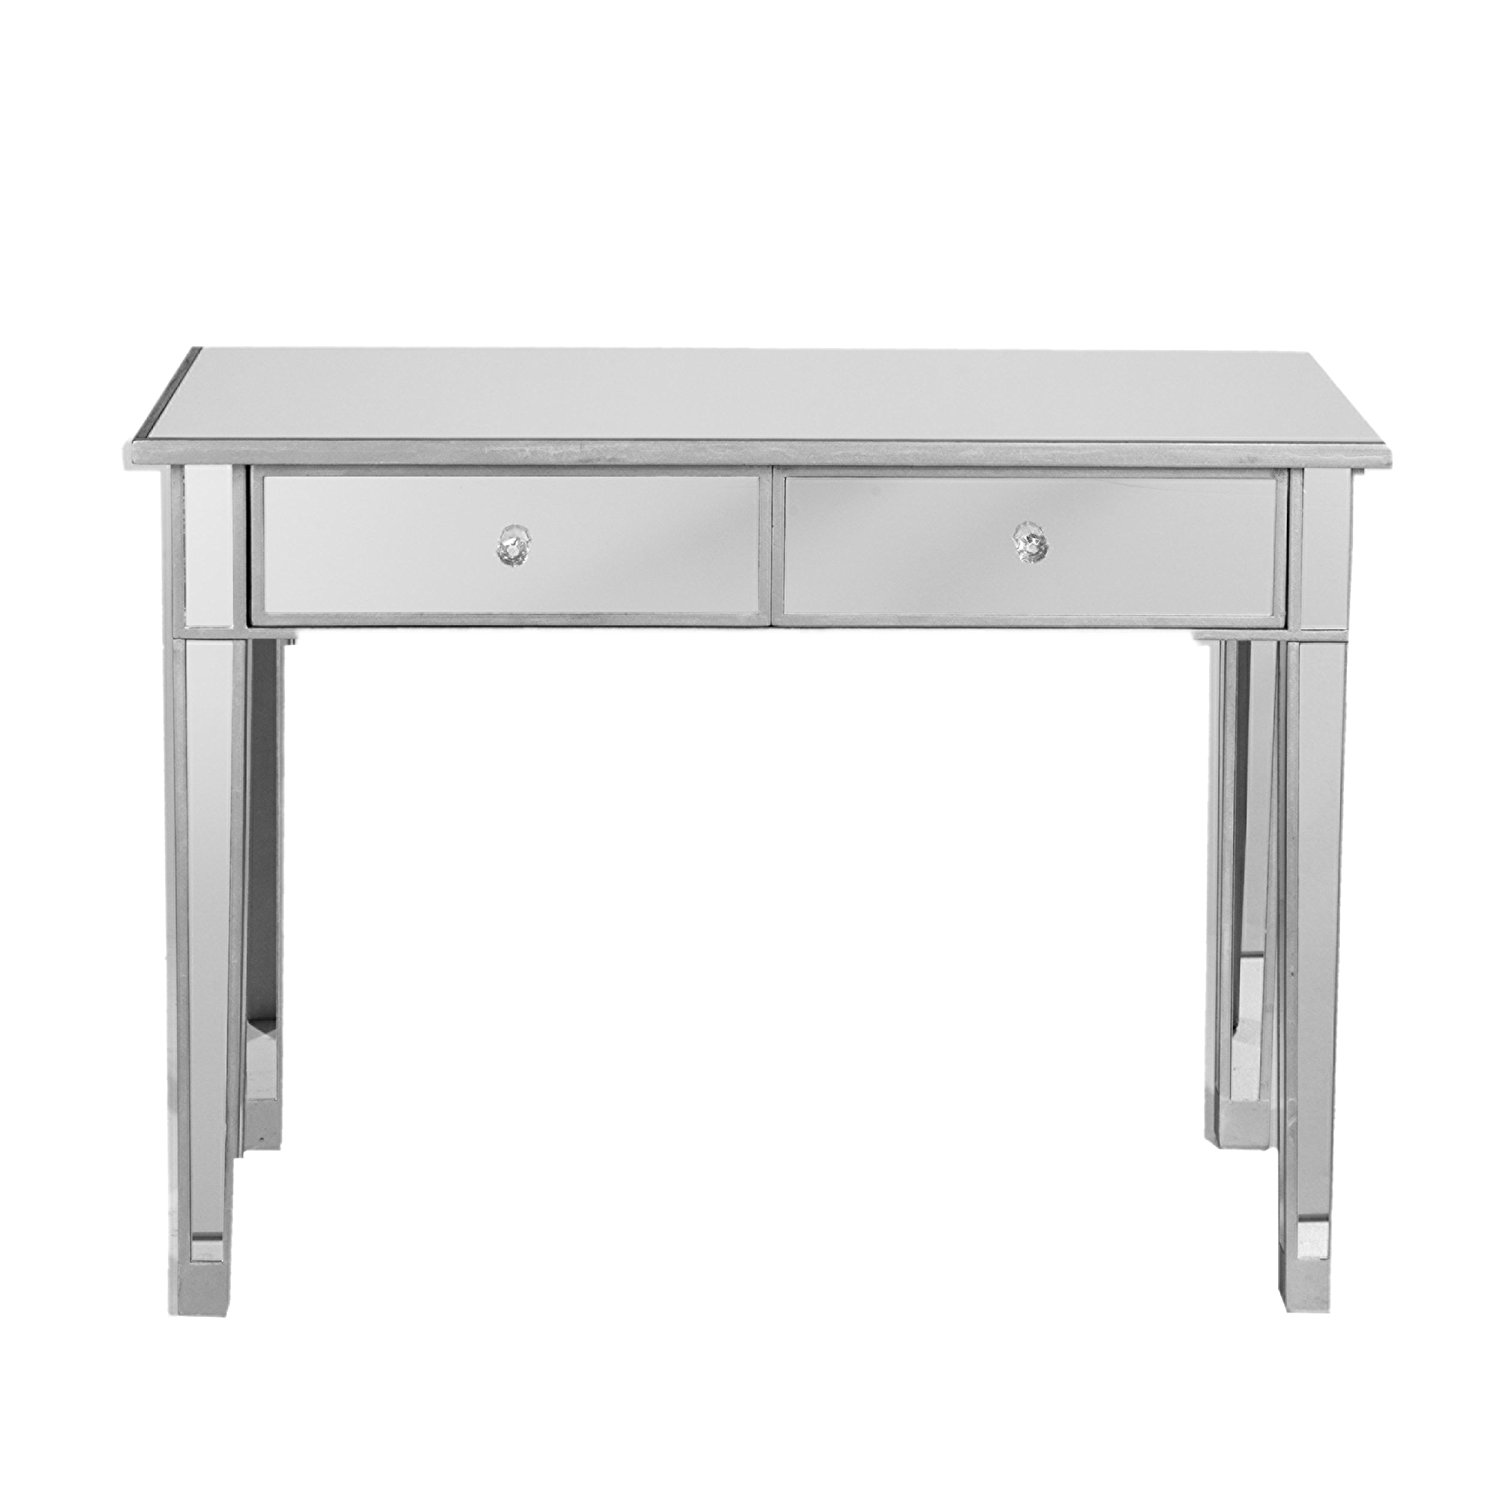 Southern Enterprises Mirage Mirrored 2 Drawer Media Console Table, Matte Silver Finish with Faux Crystal Knobs